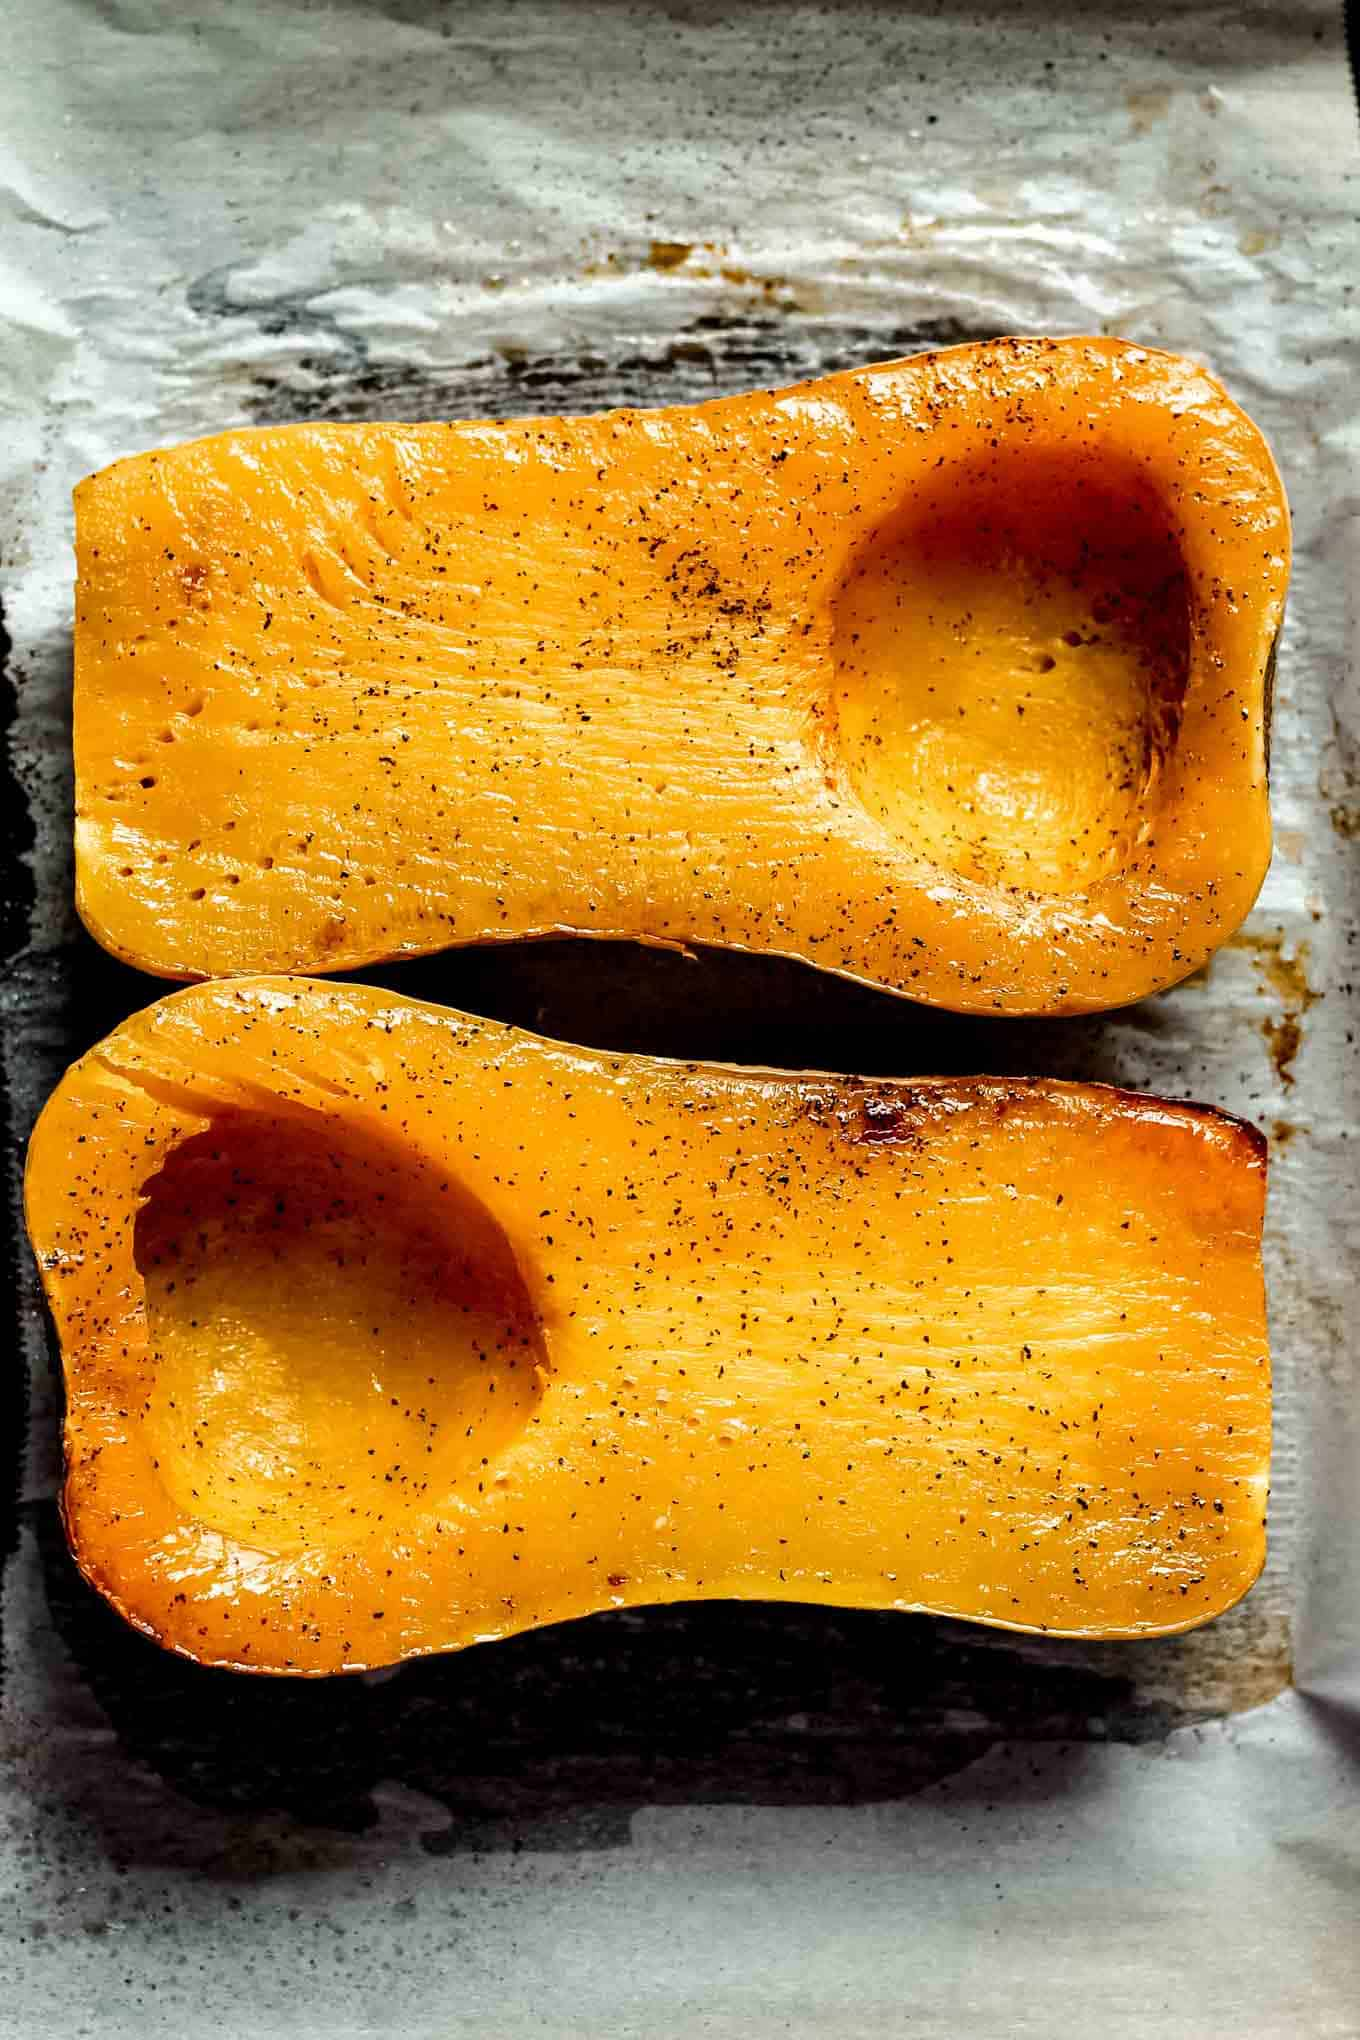 Roasted butternut squash halves on a sheet pan after